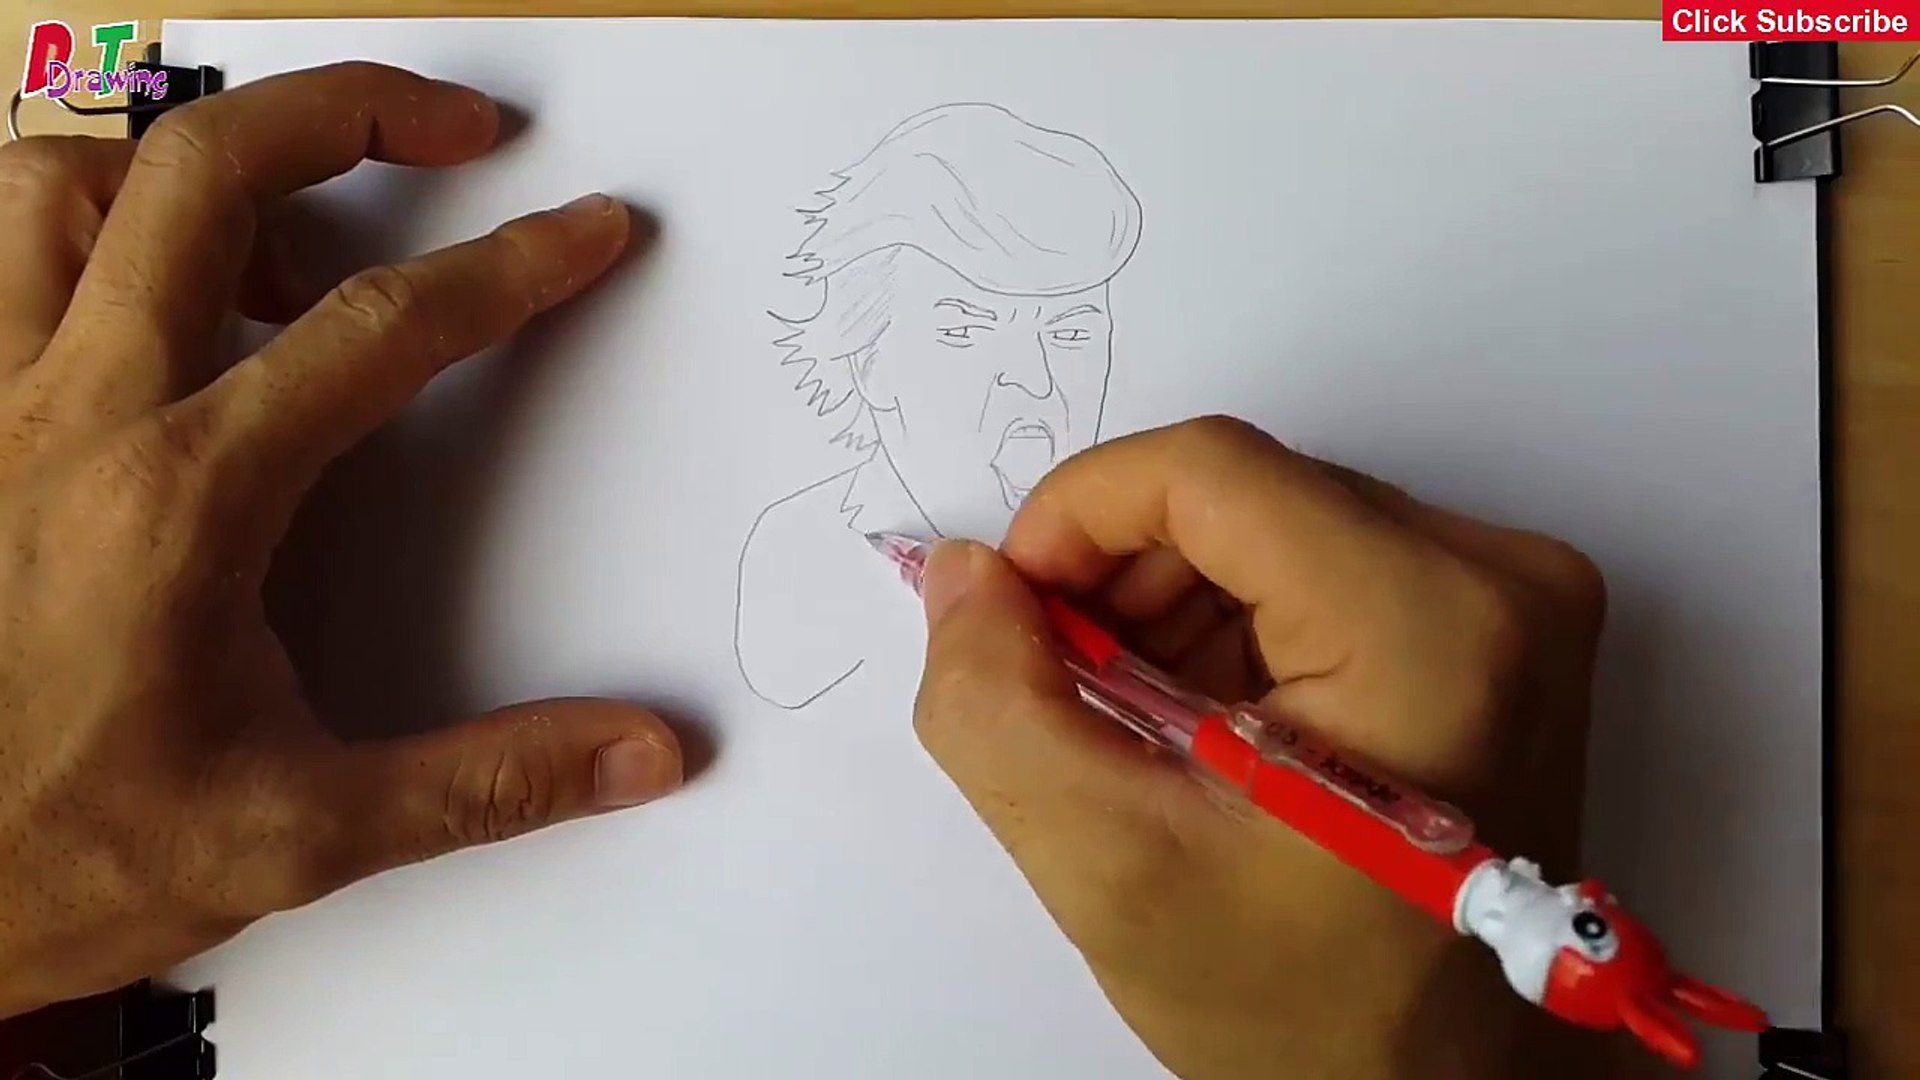 Donald Trump - 3D Drawing Donald Trump - How To Draw Donald Trump